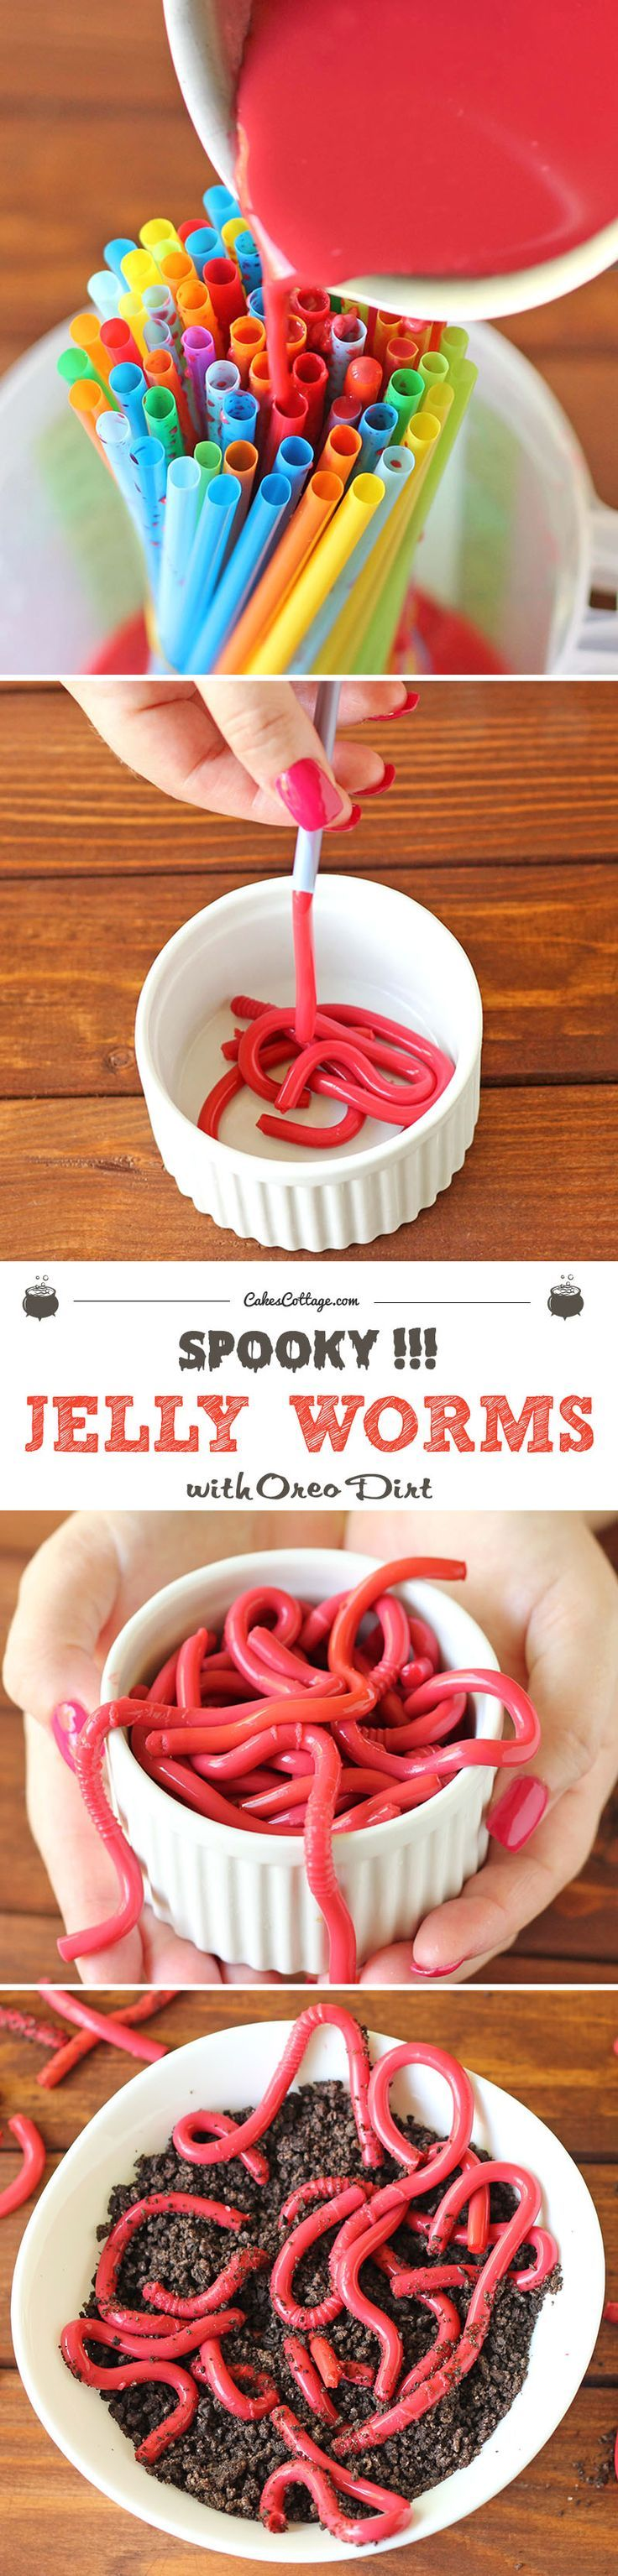 Jelly Worms with Oreo Dirt | Recipe | Jelly worms, Halloween ...